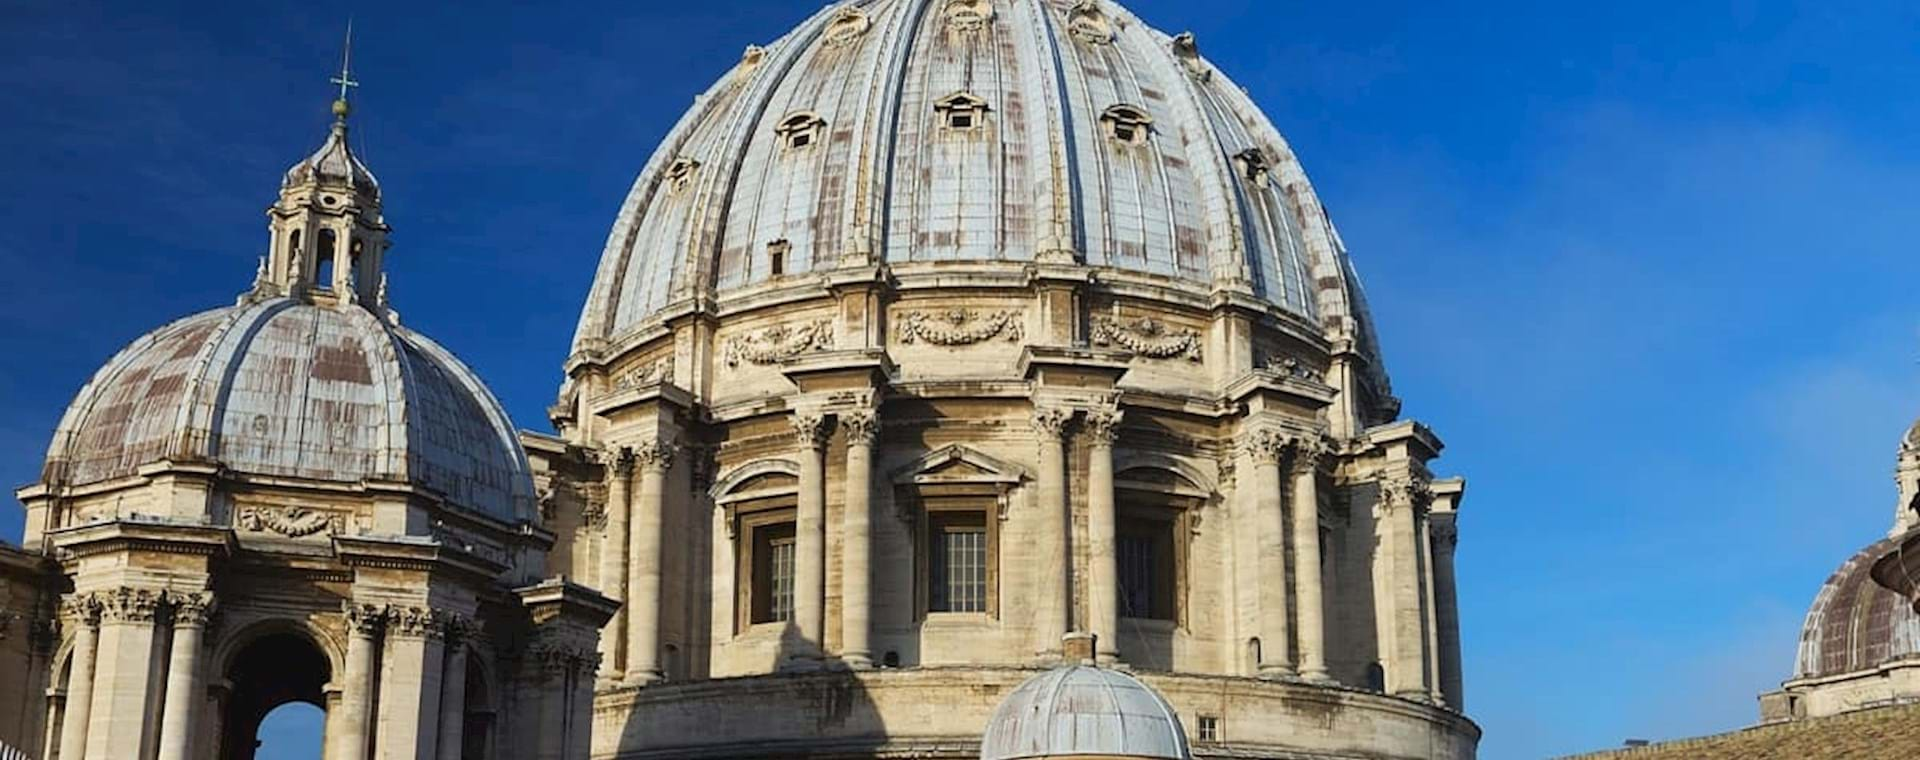 St. Peter's Basilica Dome seen from the Basilica's rooftop on a sunny day